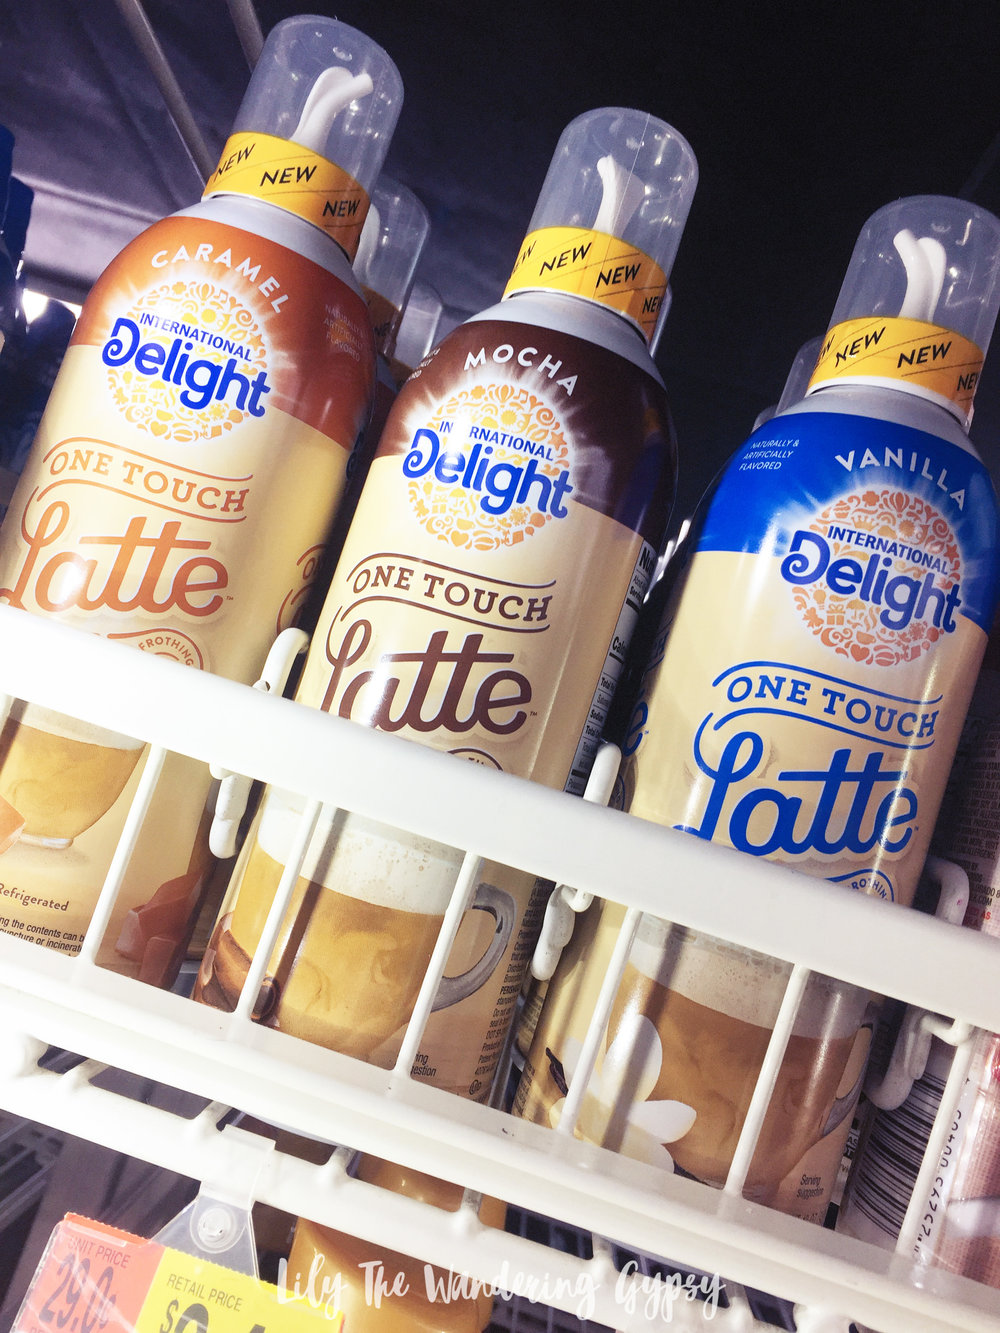 Find International Delight One Touch Lattes at Walmart